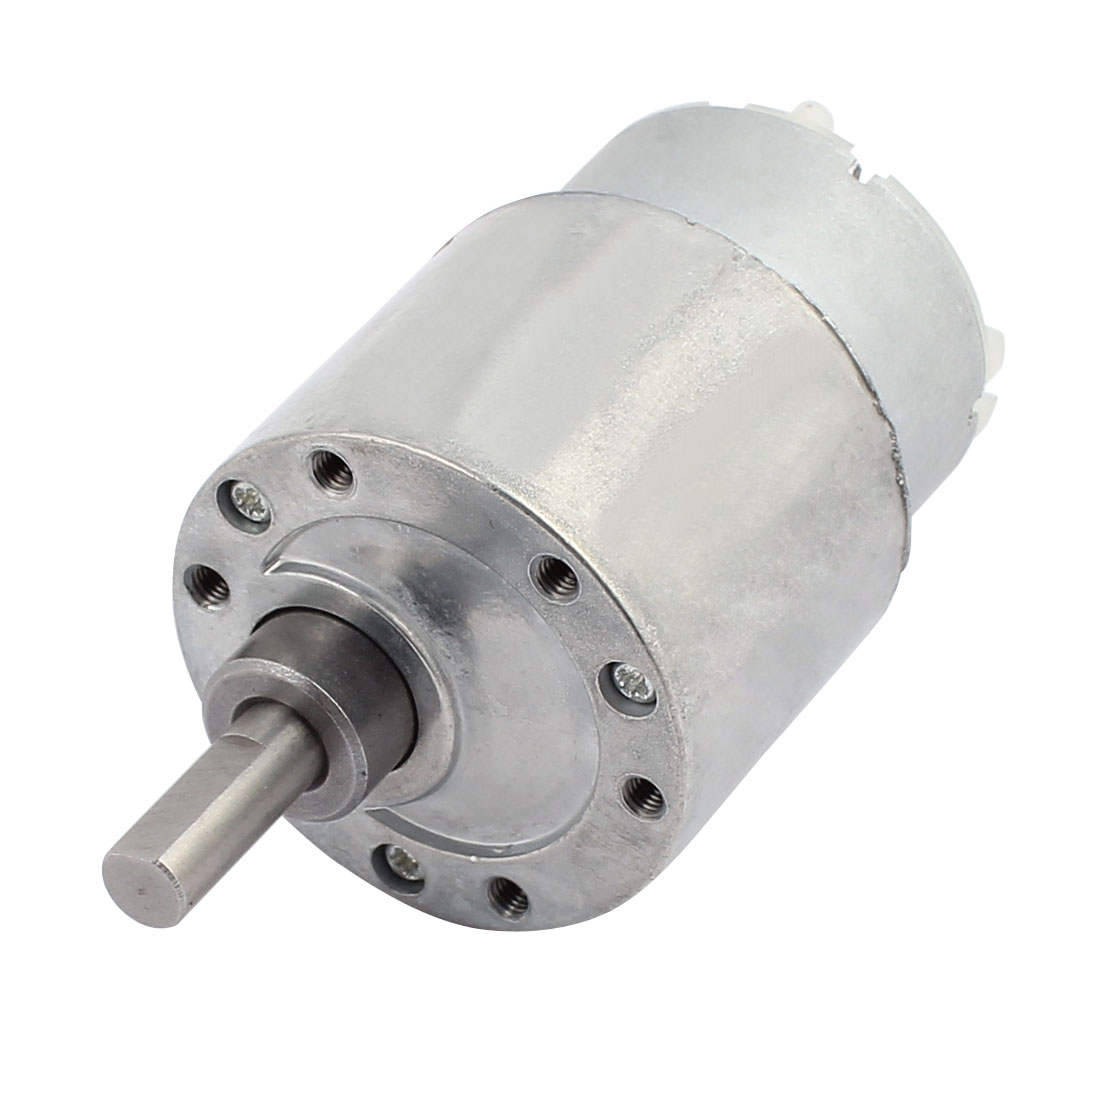 3-5RPM-12V-0-07A-6mm-Shaft-DC-Geared-Motor-Replacement